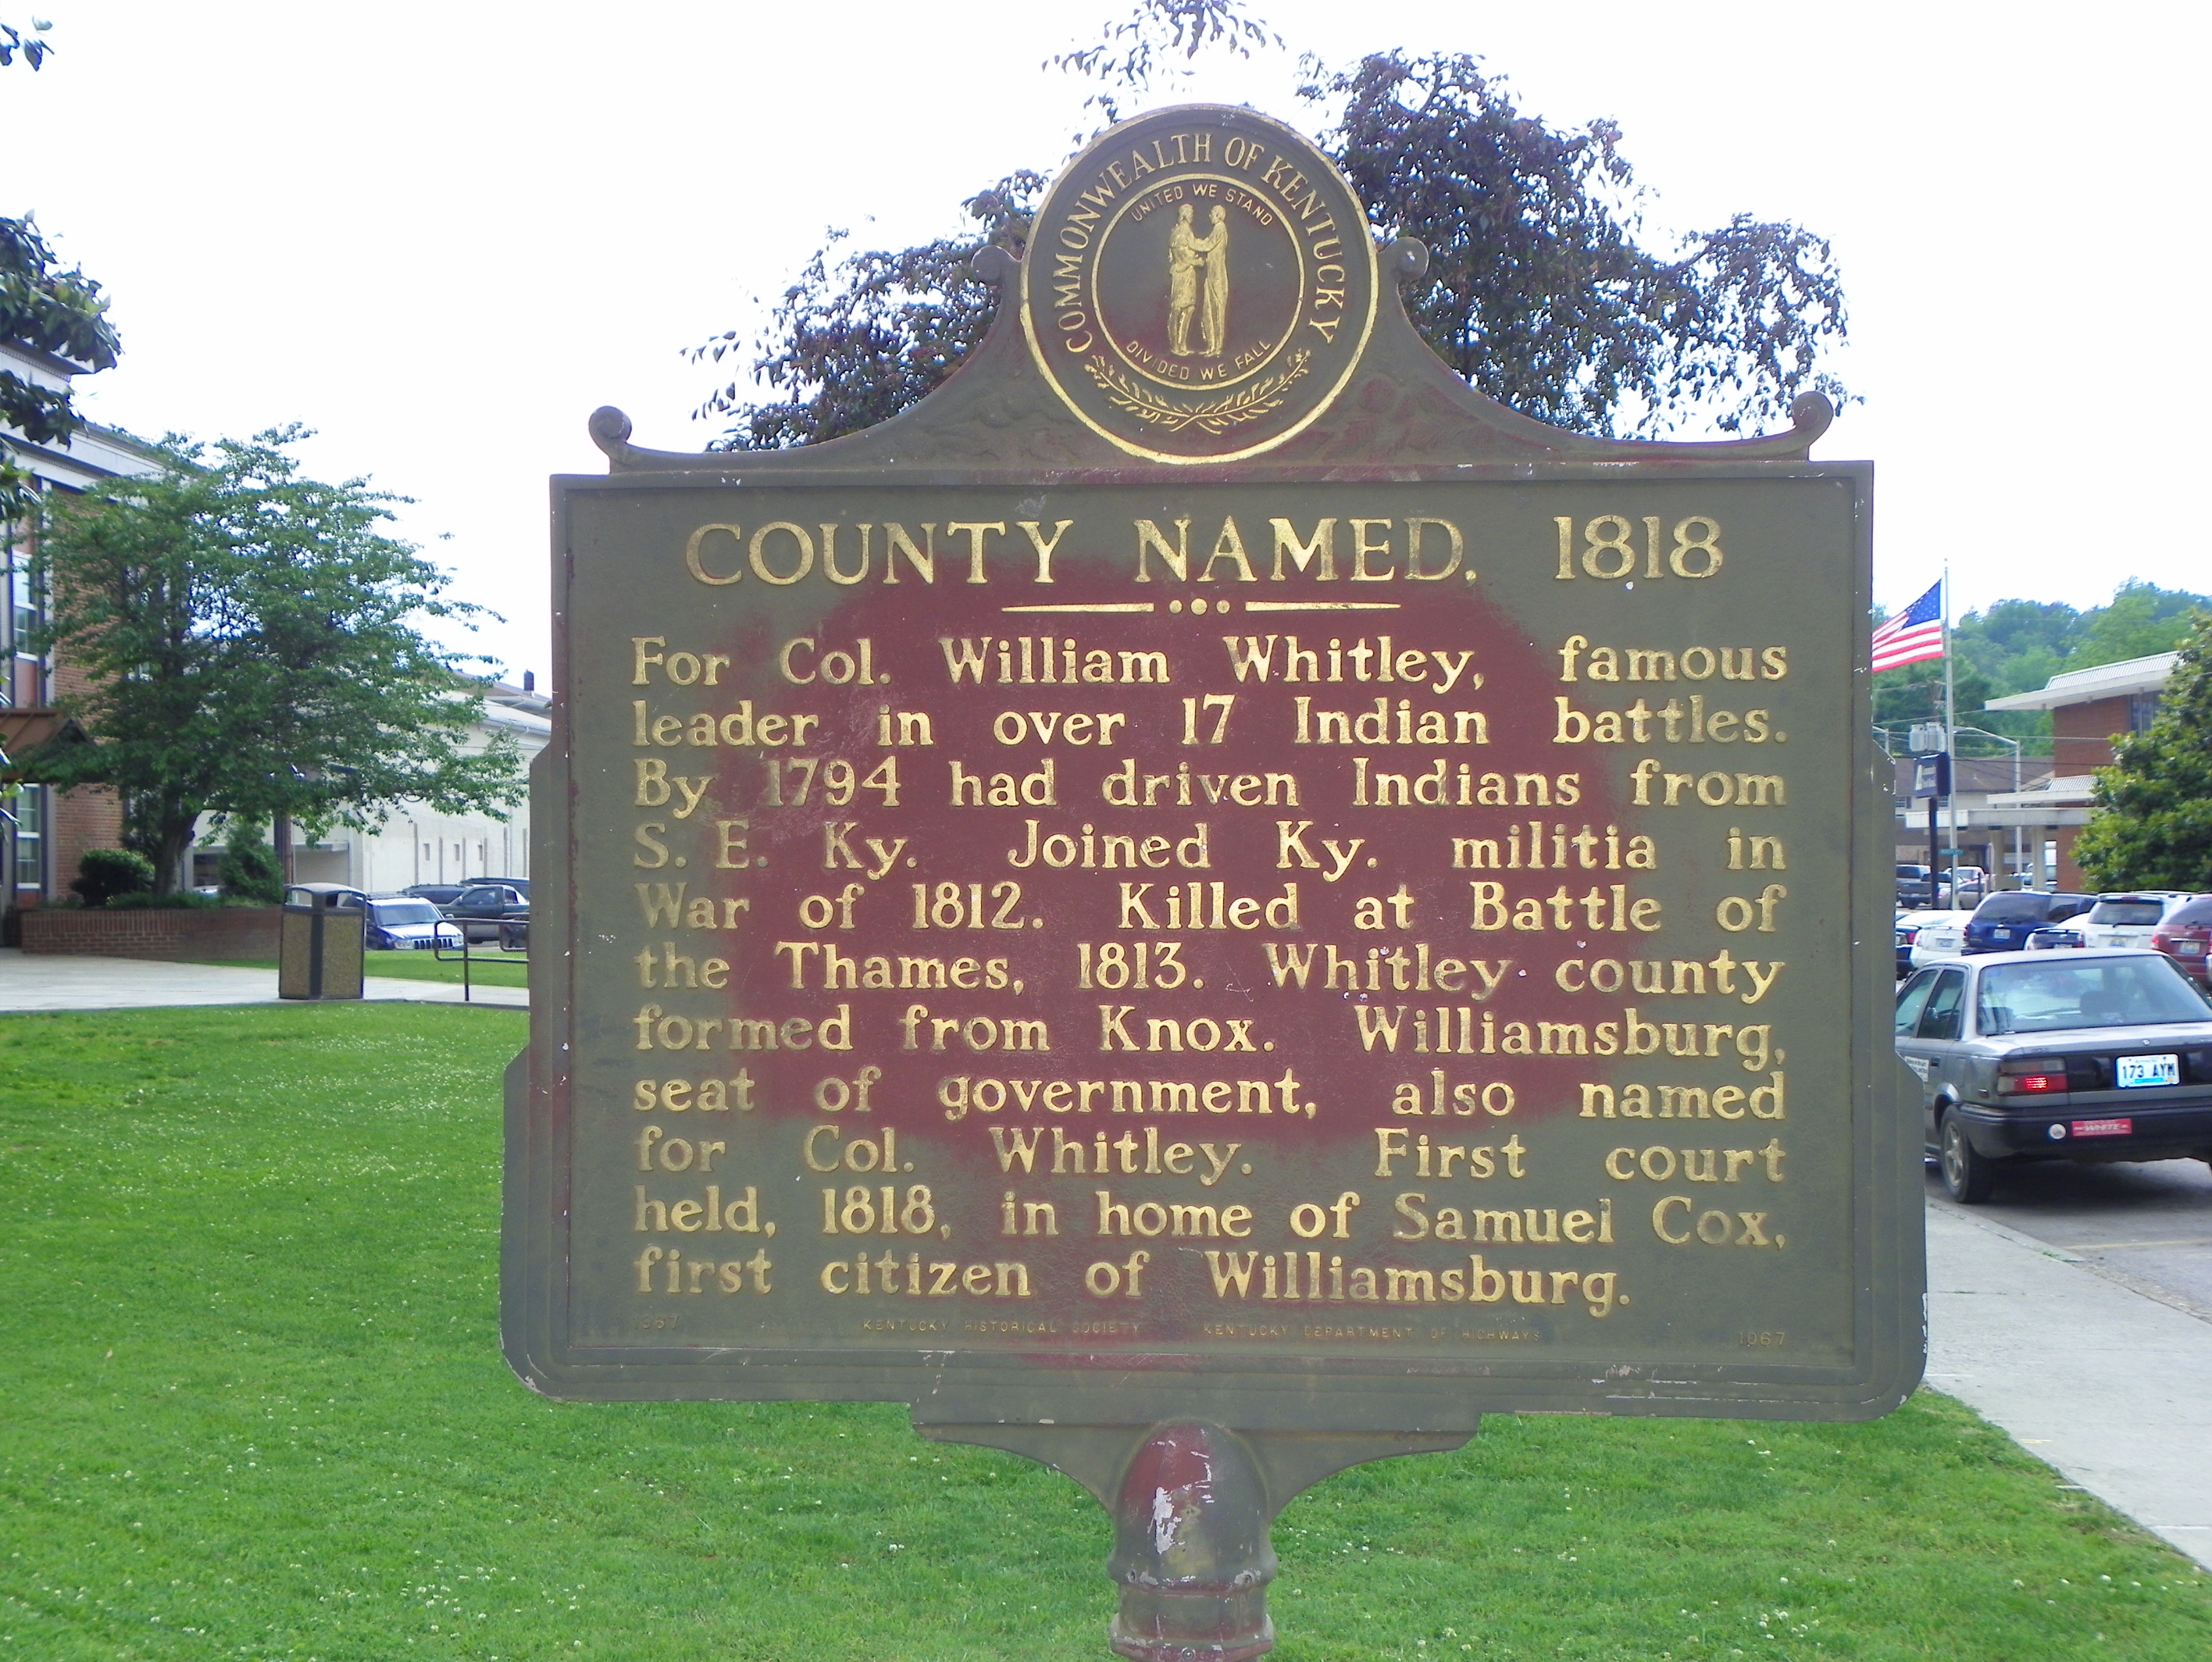 whitley county dating Whitley county detention center is a medium security county jail located in city of williamsburg, whitley county, kyit houses adult male inmates (above 18 years of age) who are convicted for crimes which come under kentucky state law.